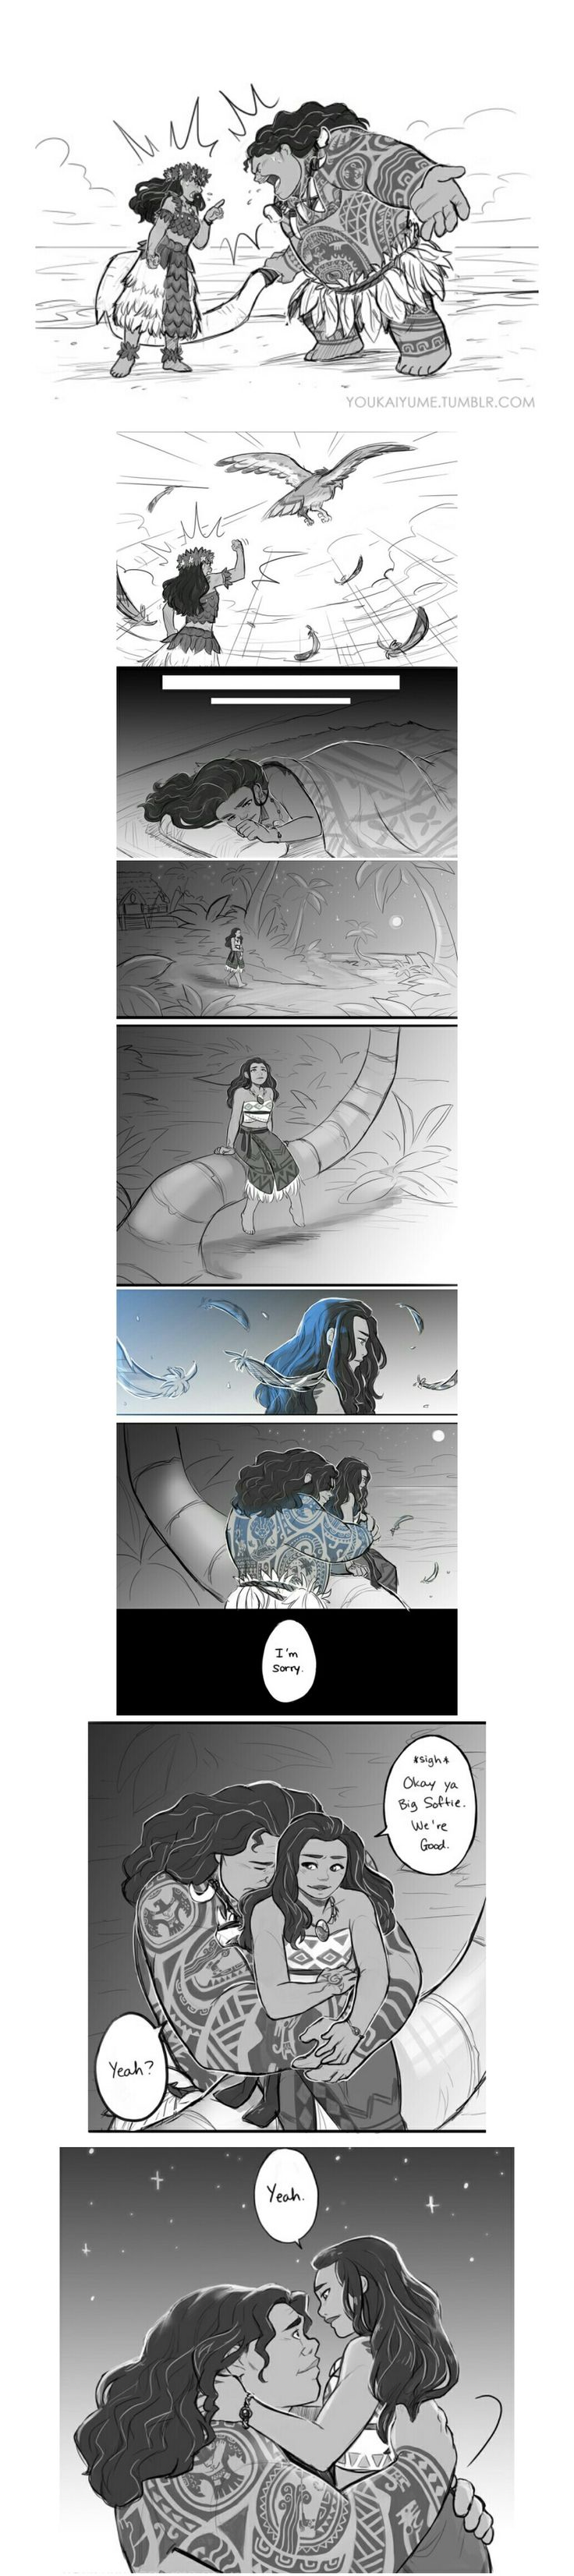 Moana and Maui comic